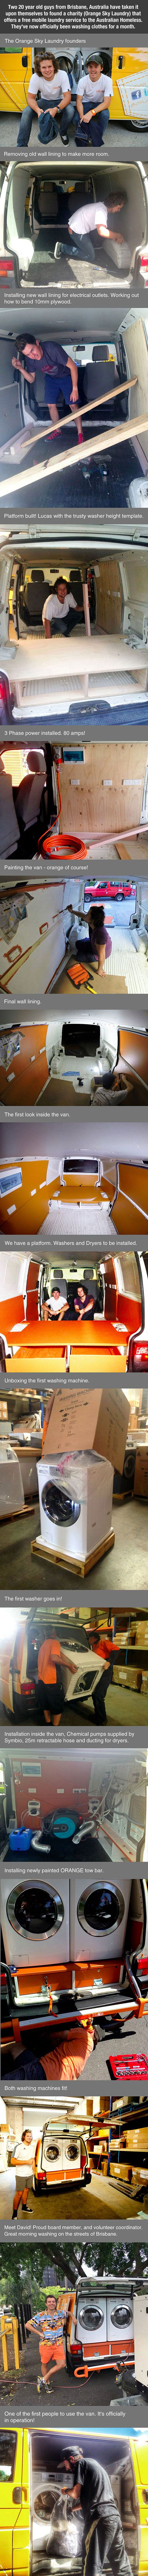 These guys created a mobile laundry service for the homeless, and it's awesome.